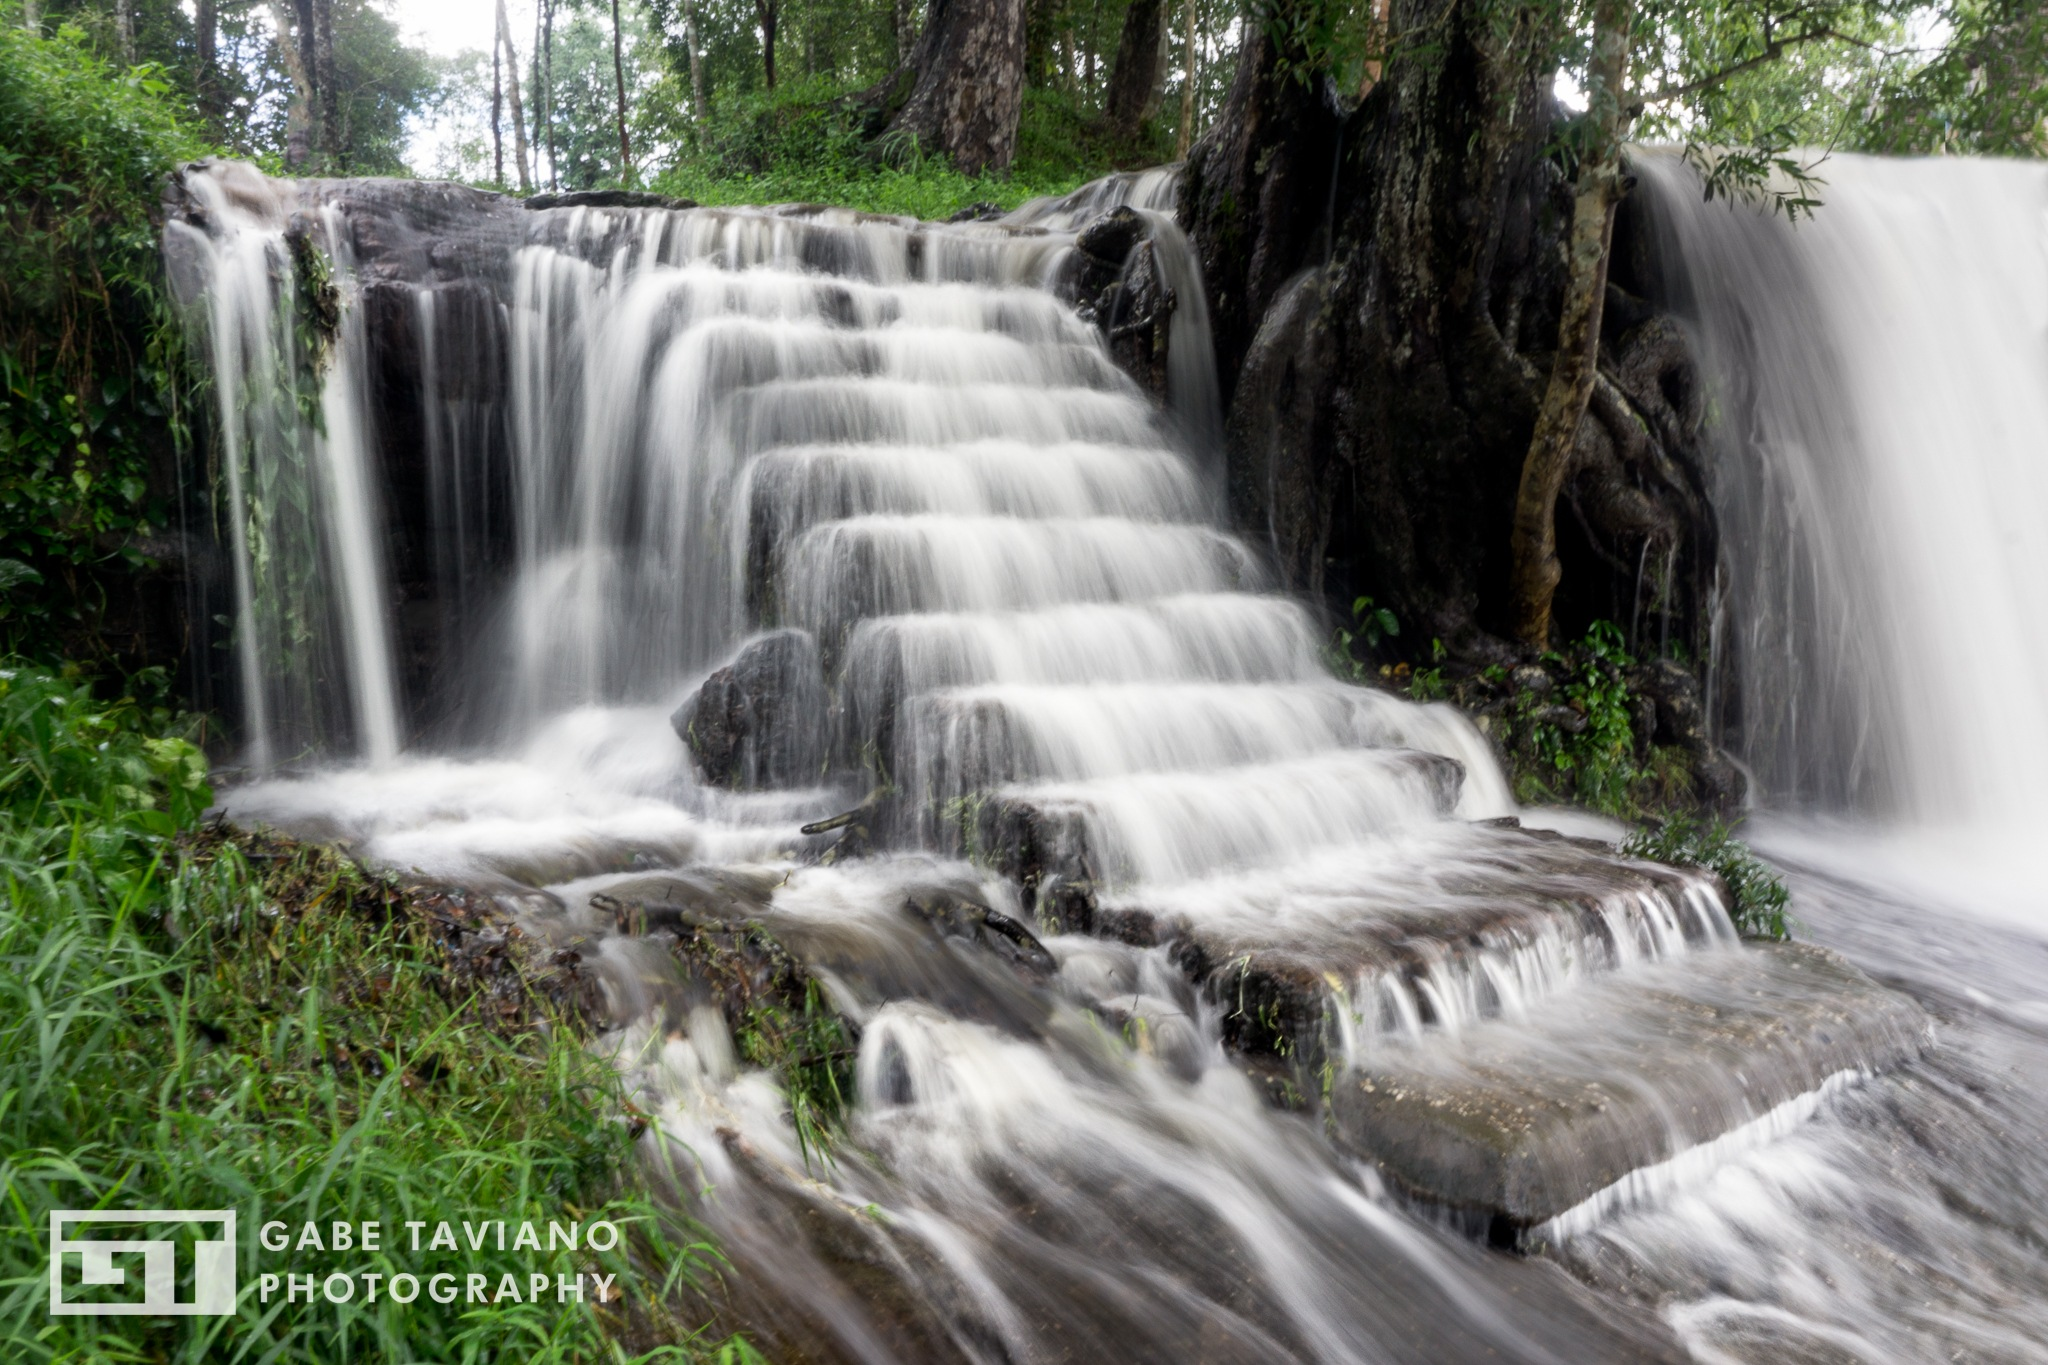 Eleven steps waterfall by Gabe Taviano